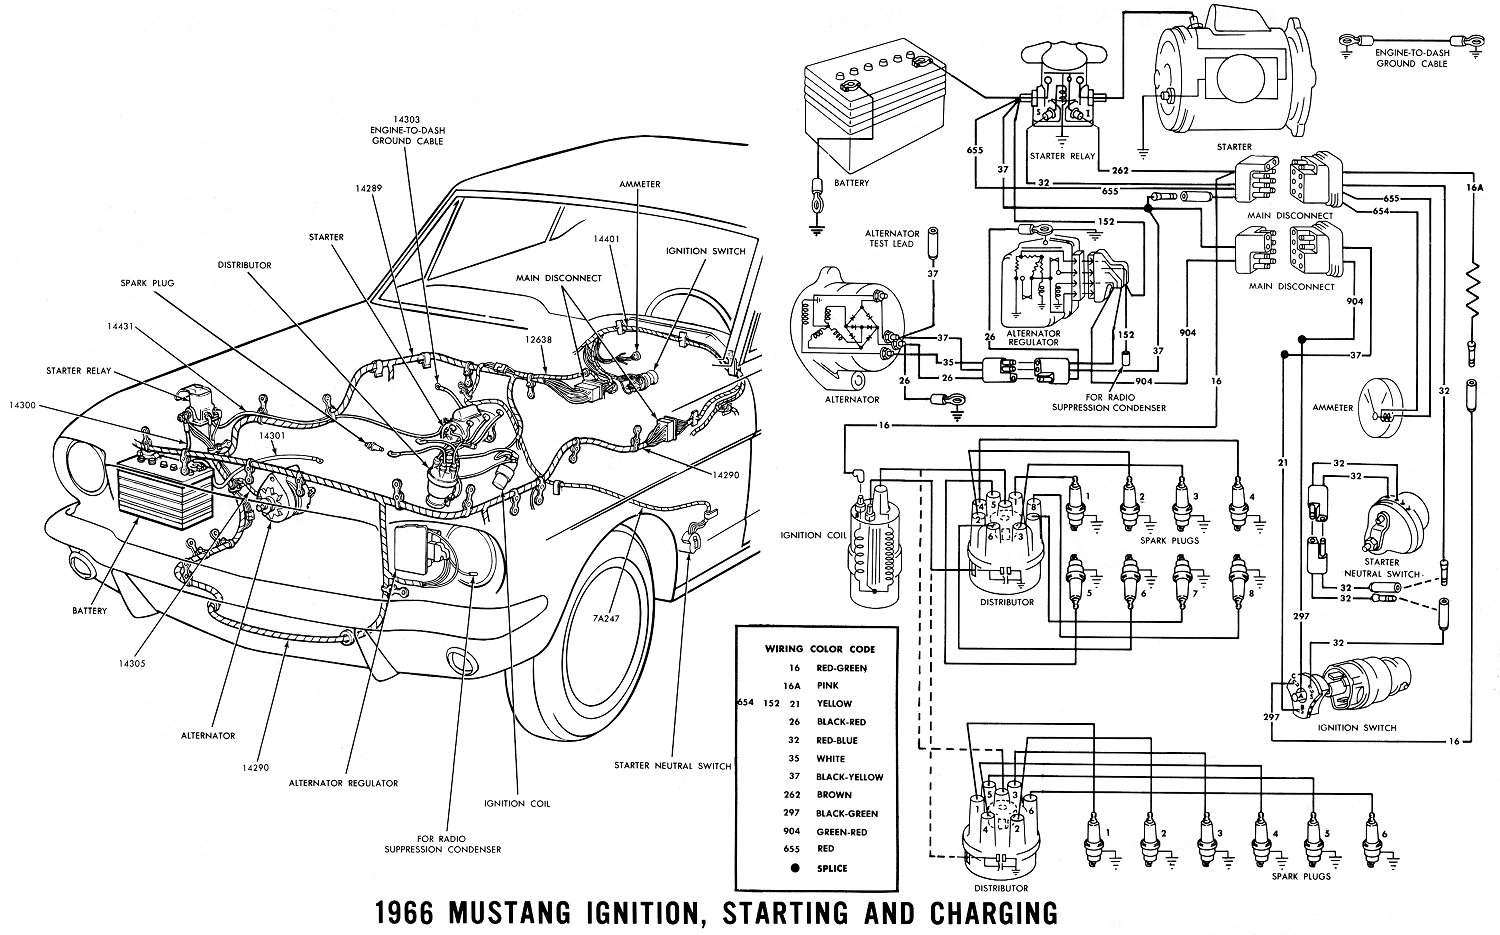 66ignit 1966 mustang wiring diagram 1967 mustang wiring schematic \u2022 wiring 65 mustang alternator wiring diagram at soozxer.org